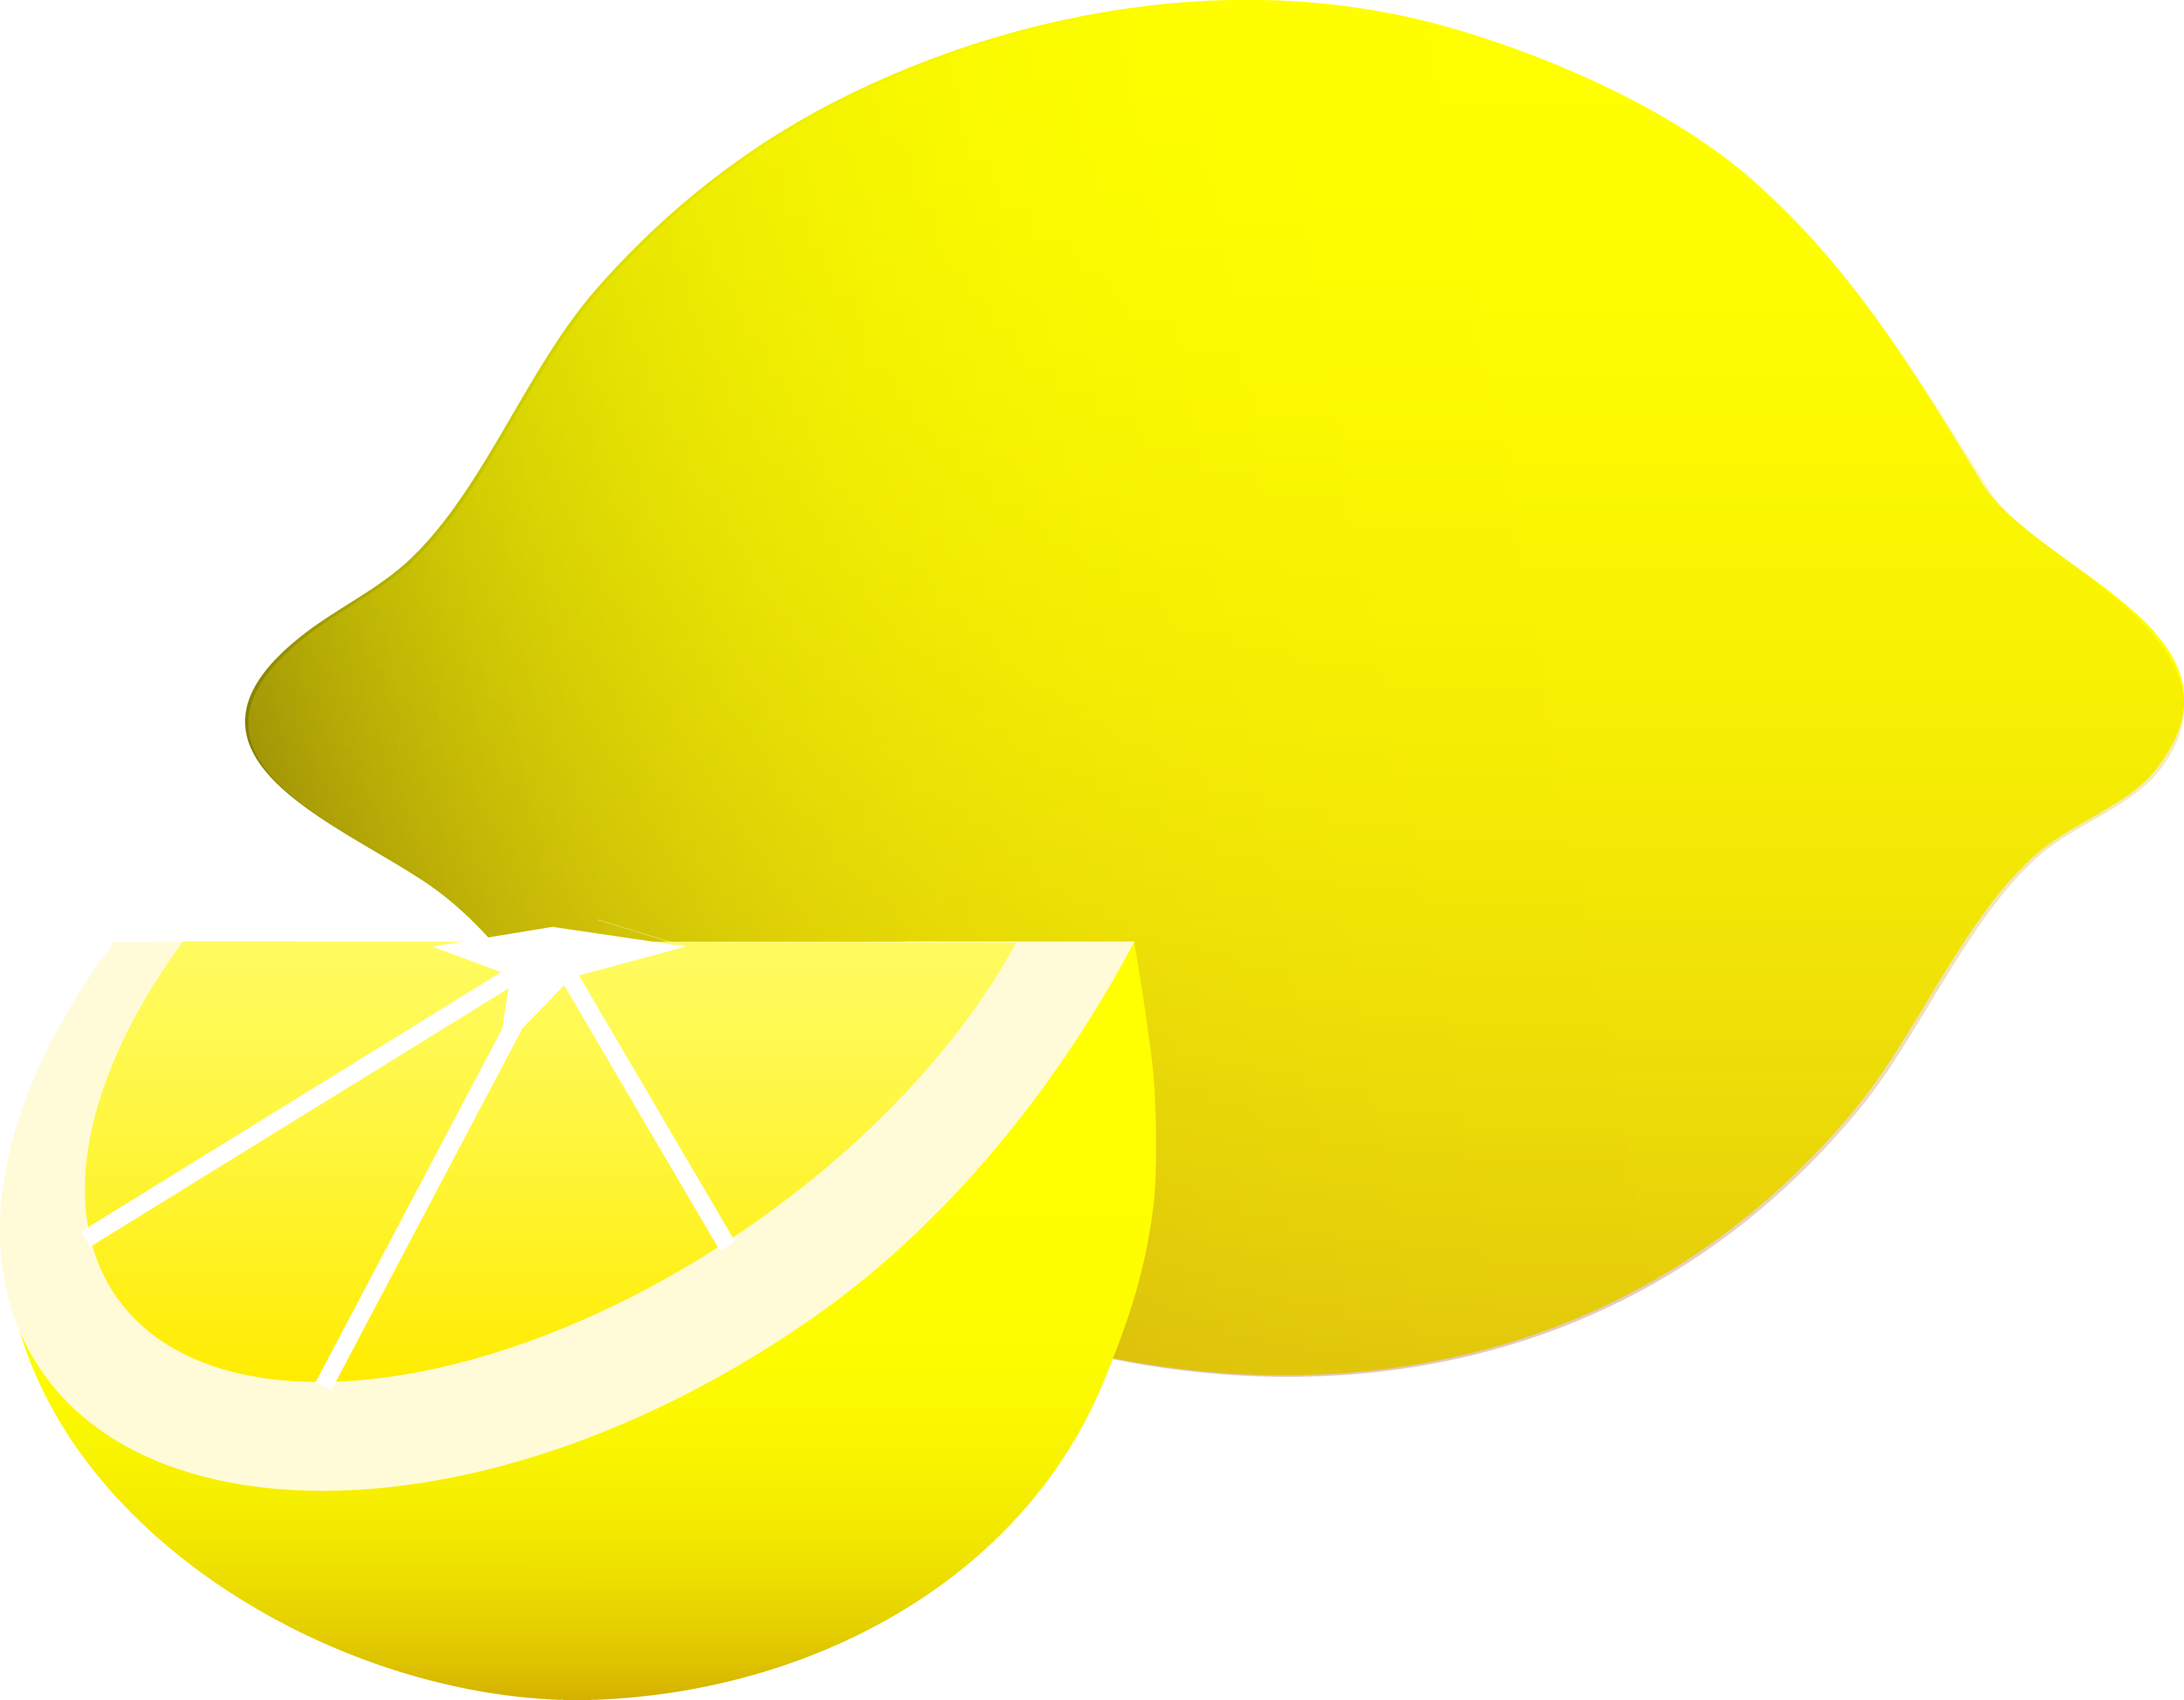 jpg library library Lemon clipart psd. Wedge drawing at getdrawings.